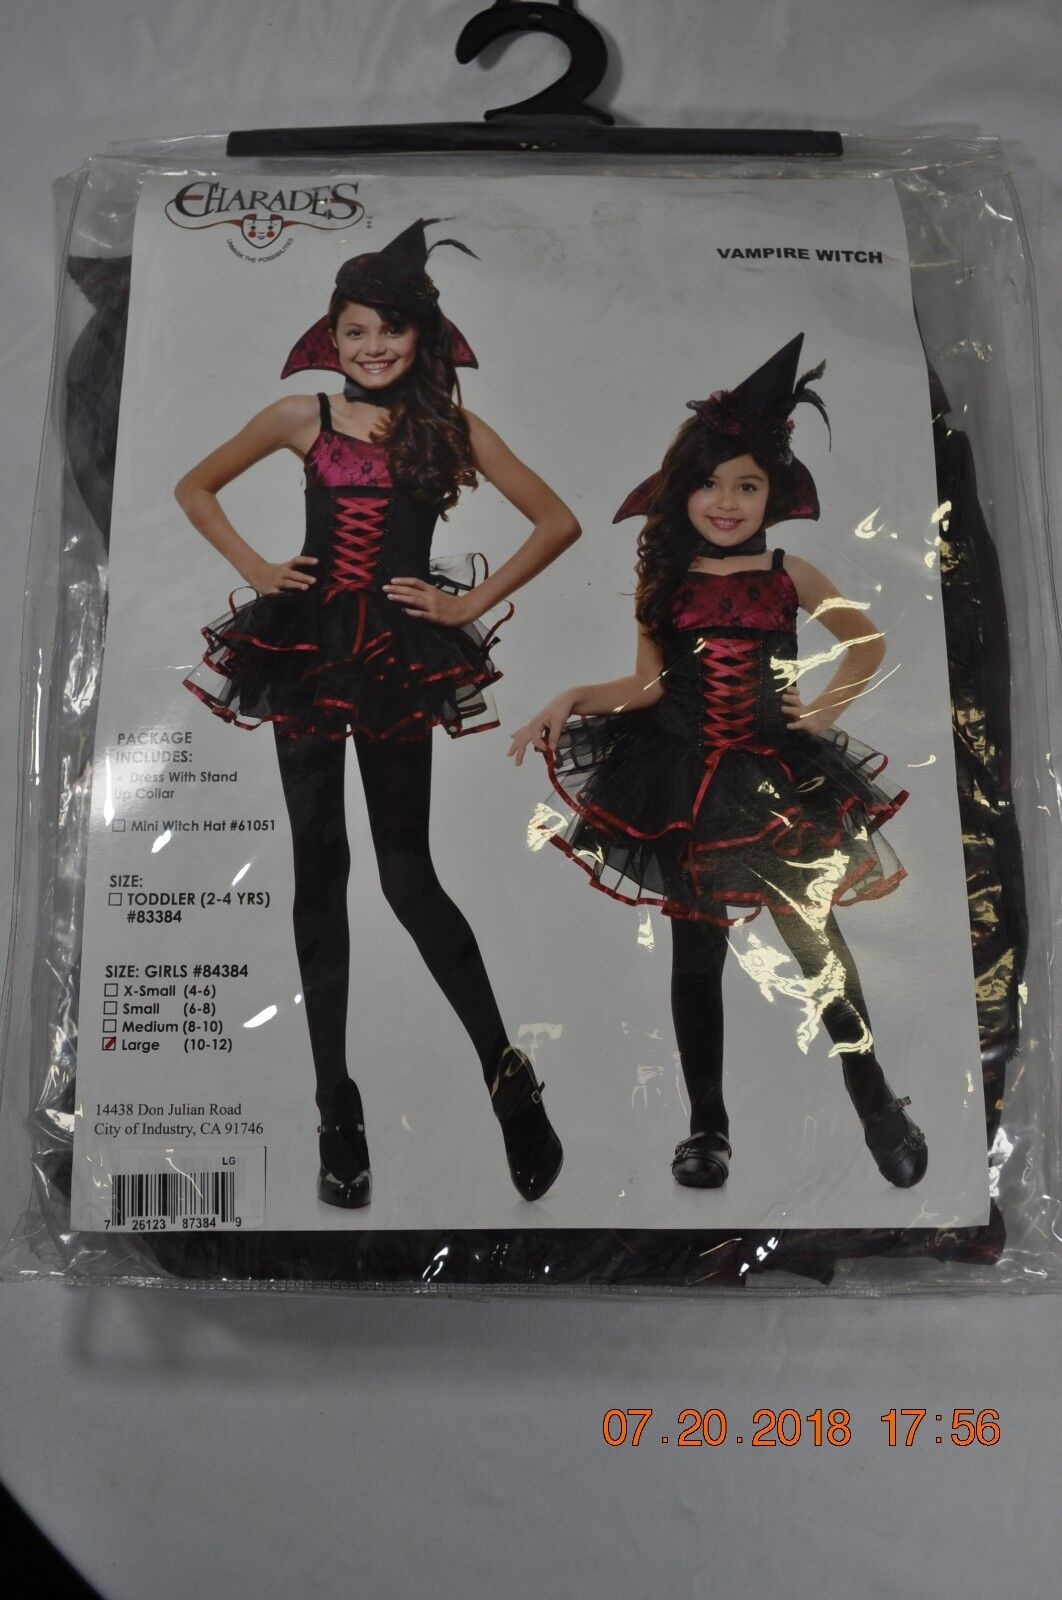 Charades Girls Vampire Witch Halloween Costume #84384 Size Large